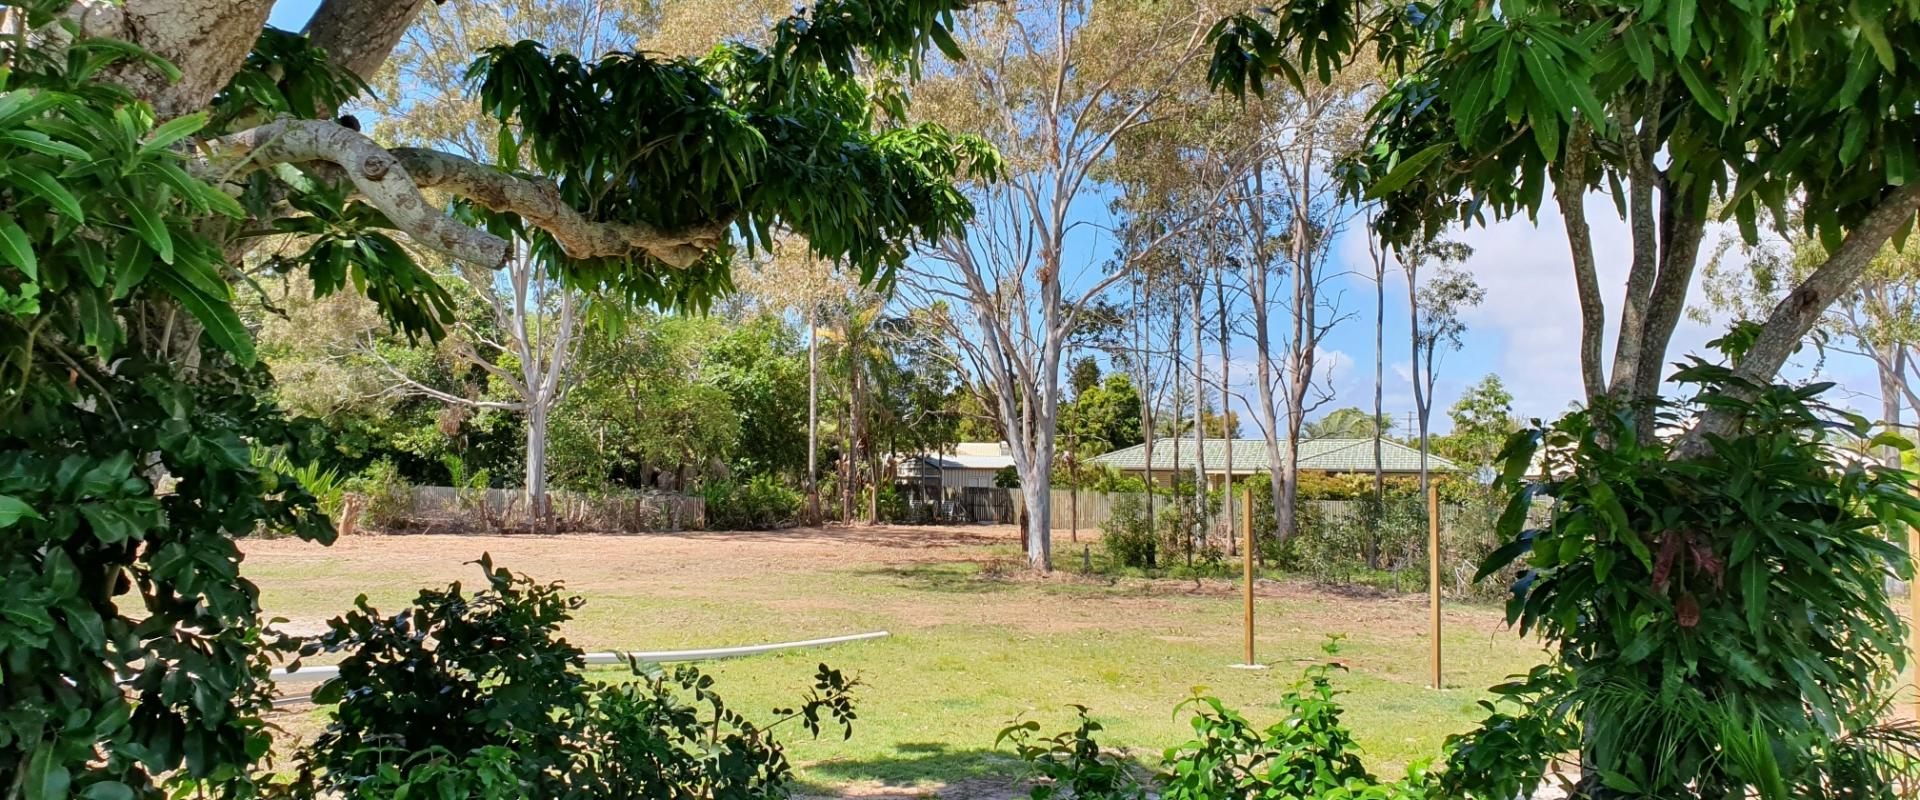 4918 SQM OF SUB DIVIDABLE LAND S.T.C.A. INCLUDING A SPACIOUS EXECUTIVE FAMILY RESIDENCE, WALK TO THE BEACH FROM THIS SOUGHT AFTER PENINSULA LOCATION.